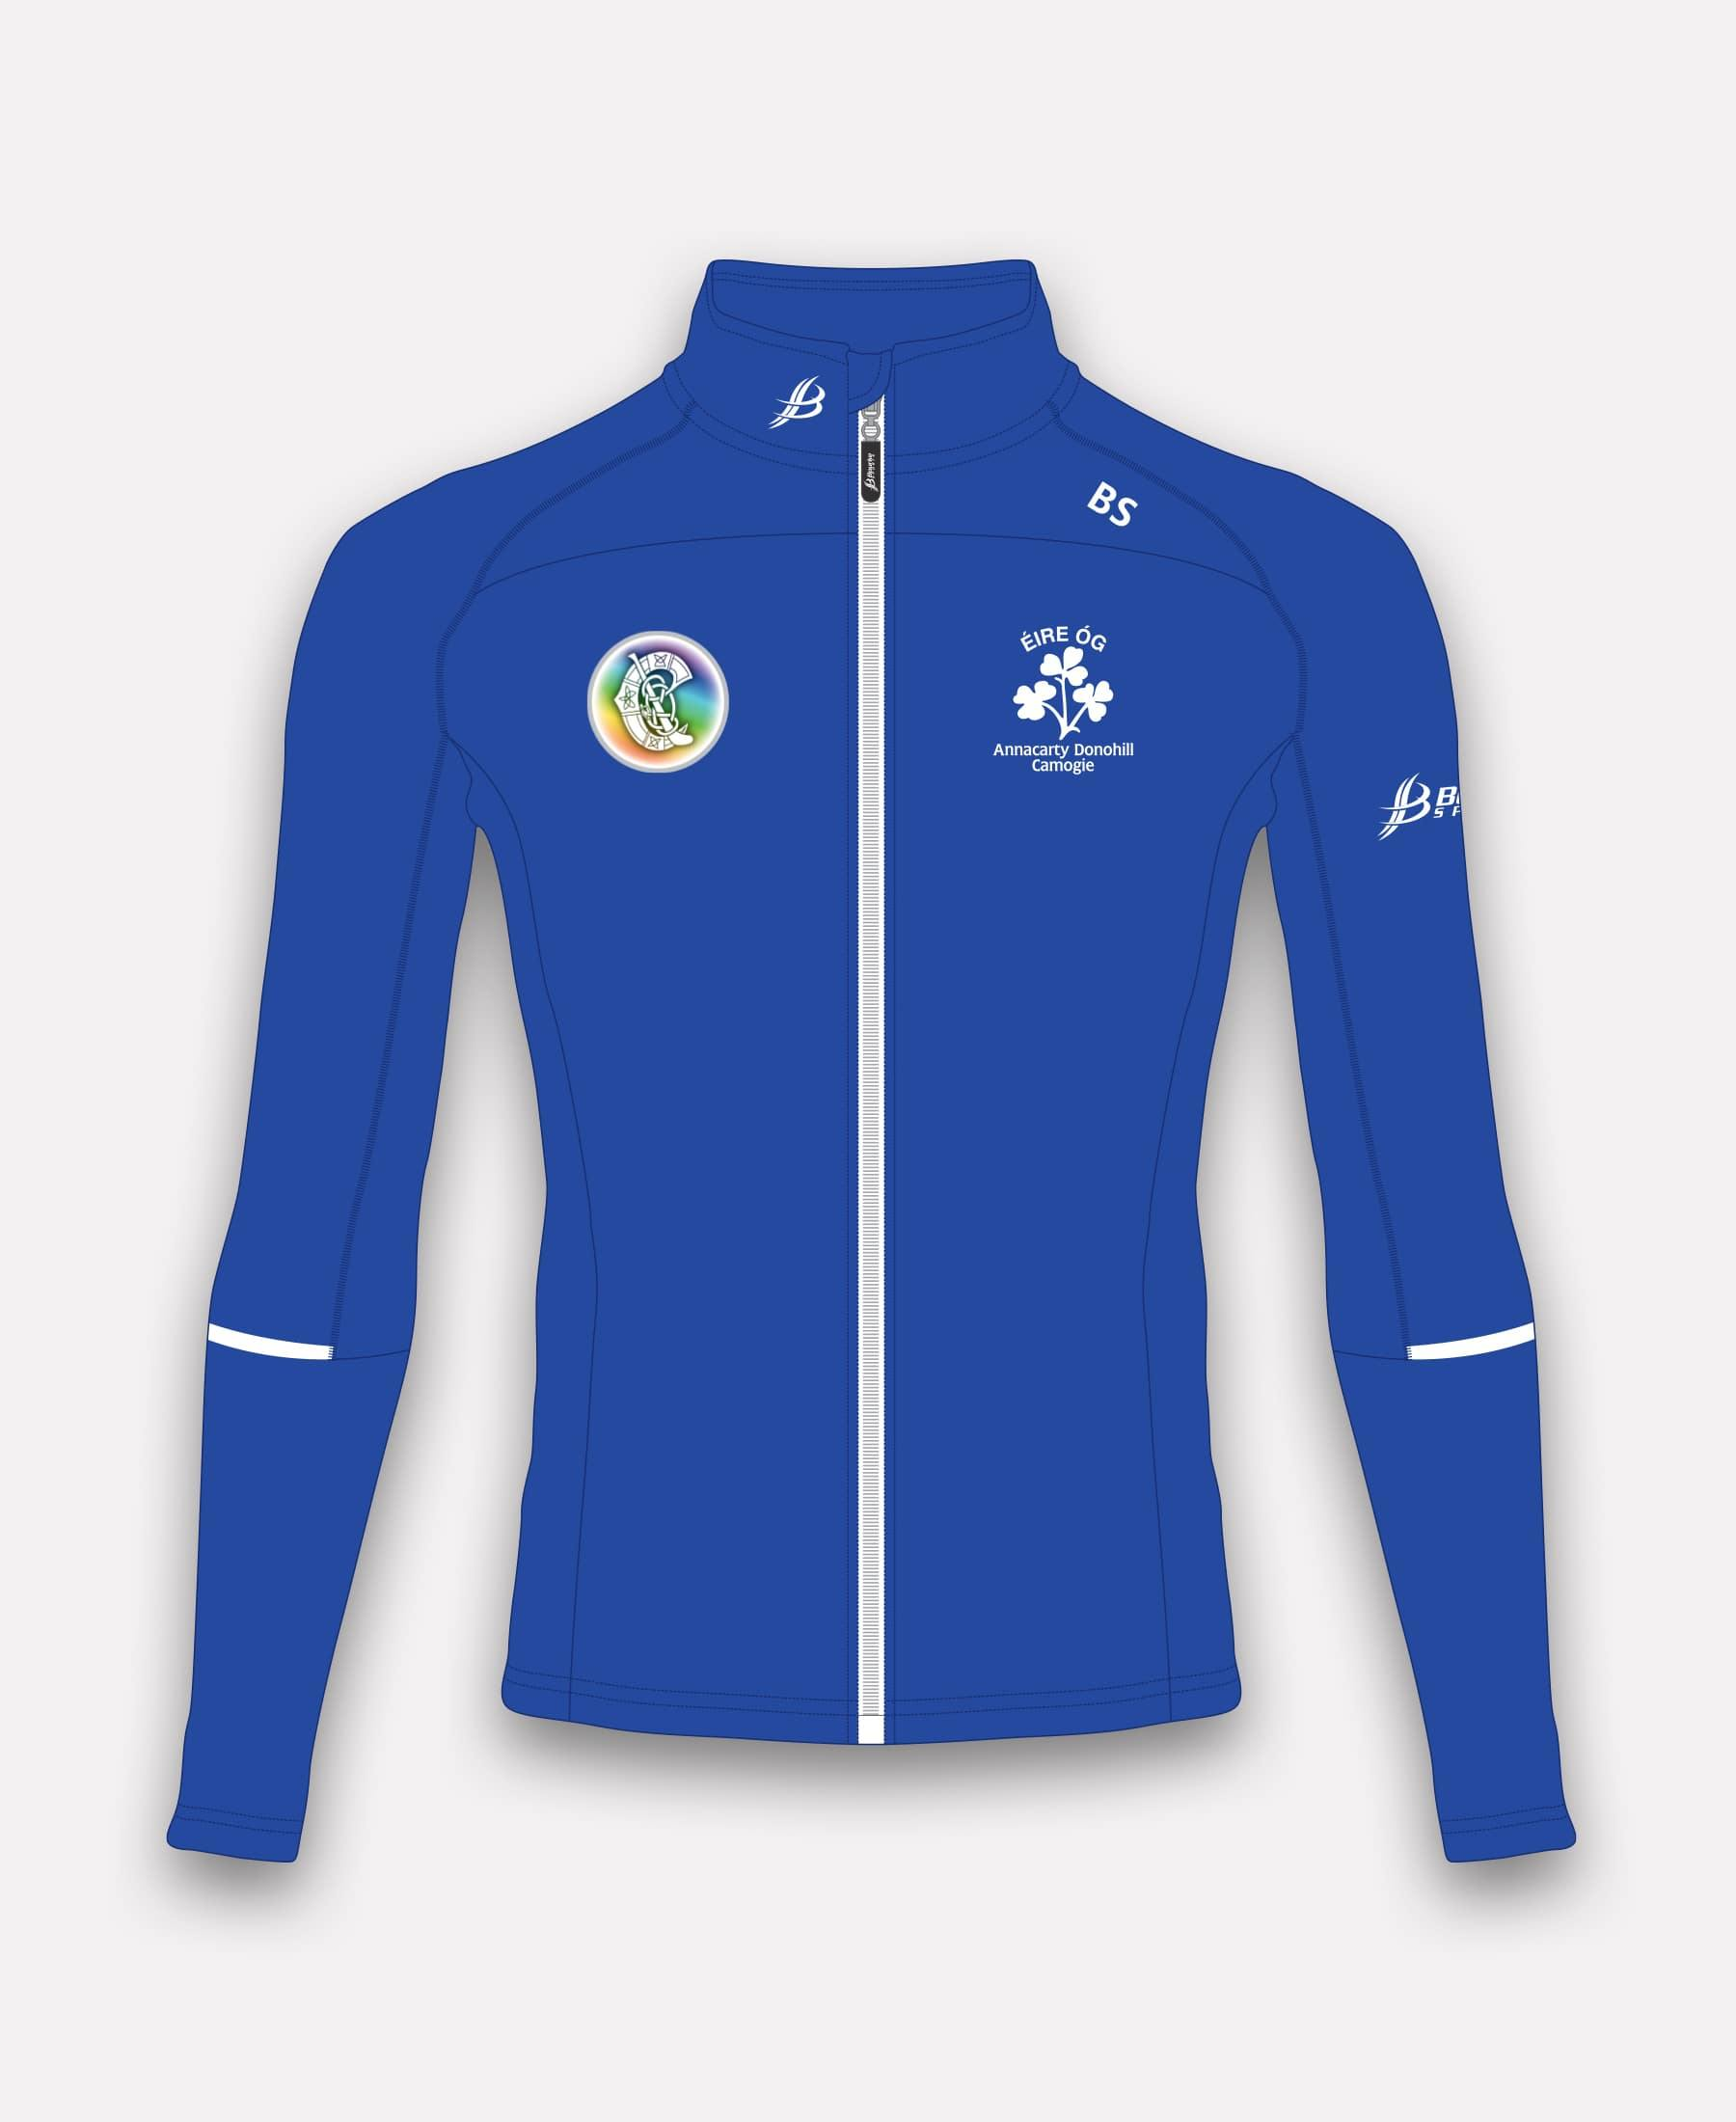 Eire Og Annacarty Donohill Camogie Ultra Full Zip